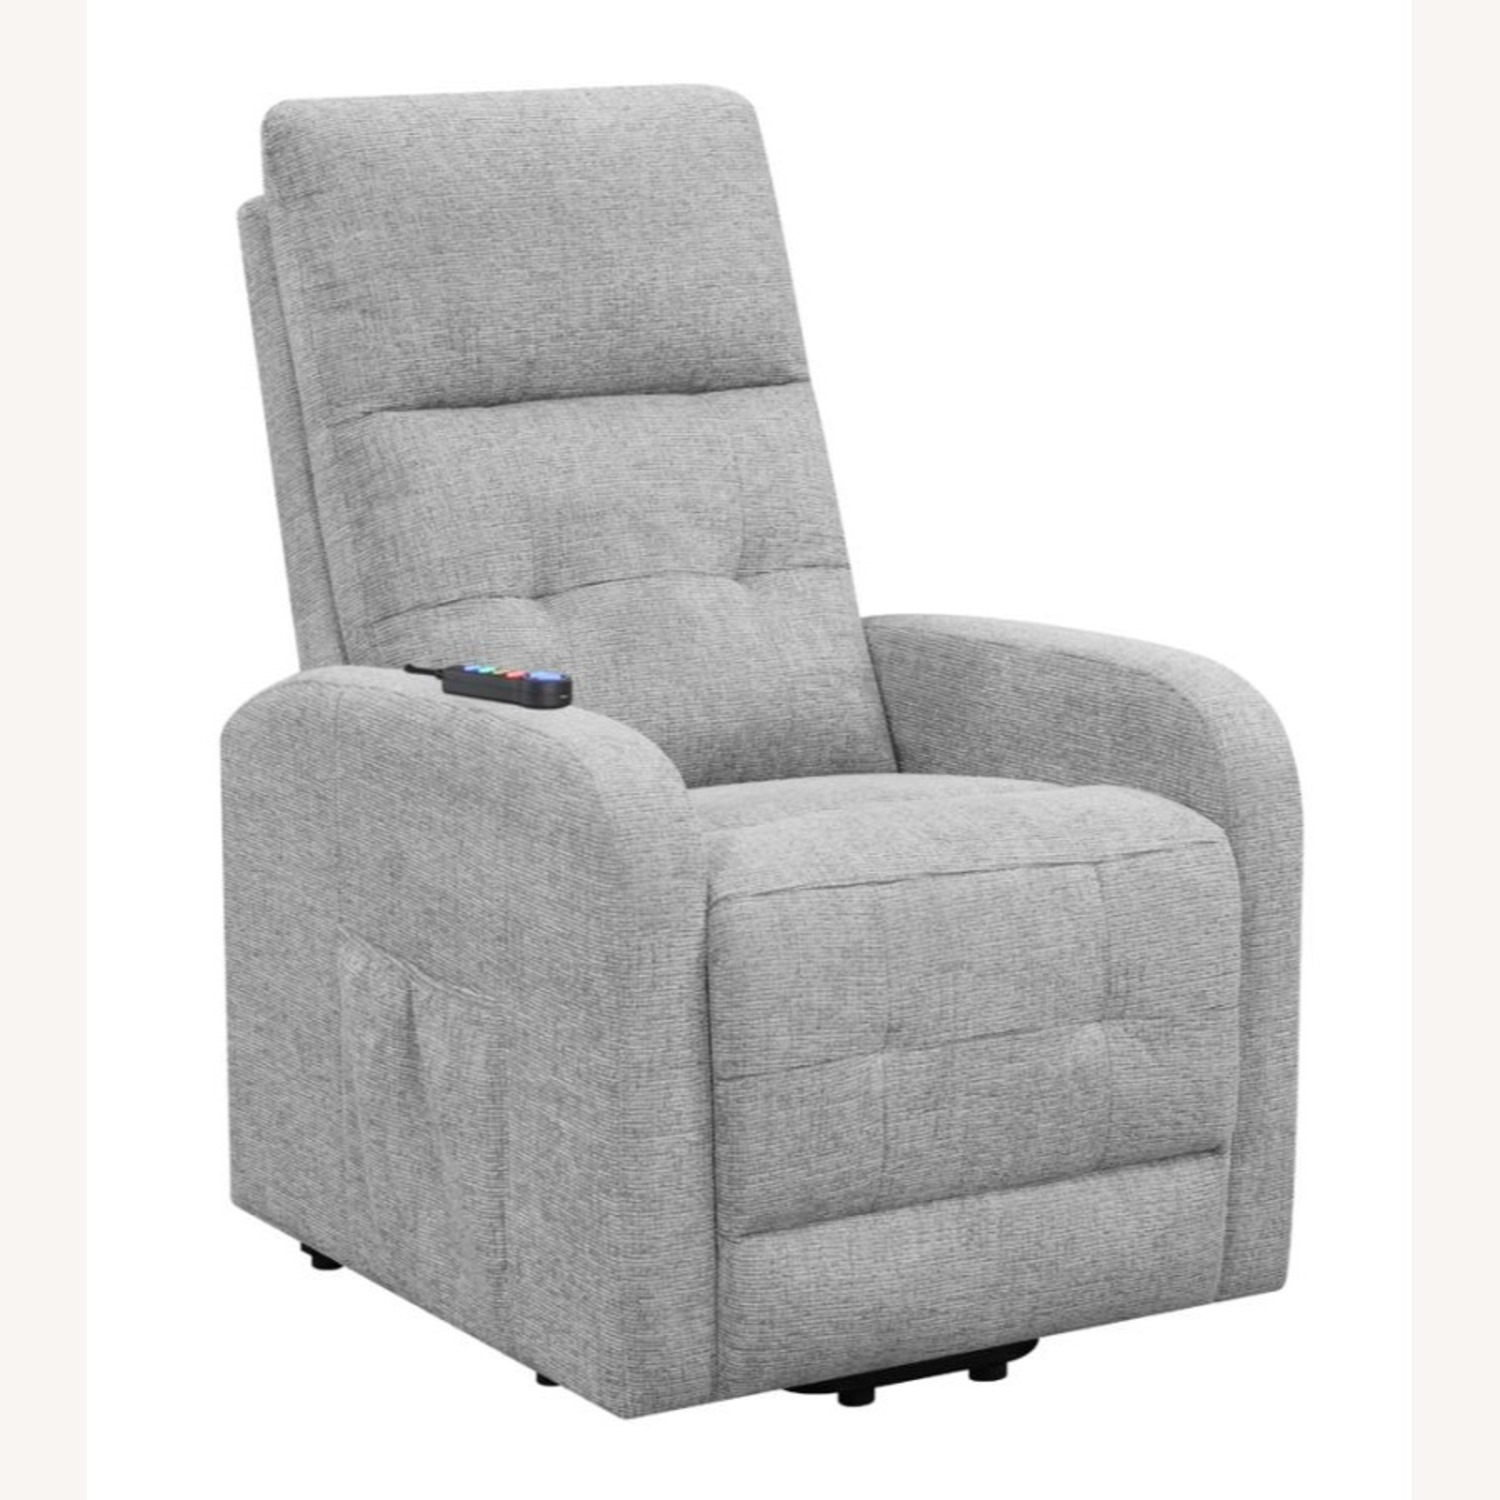 Power Lift Massage Chair In Grey Fabric - image-0